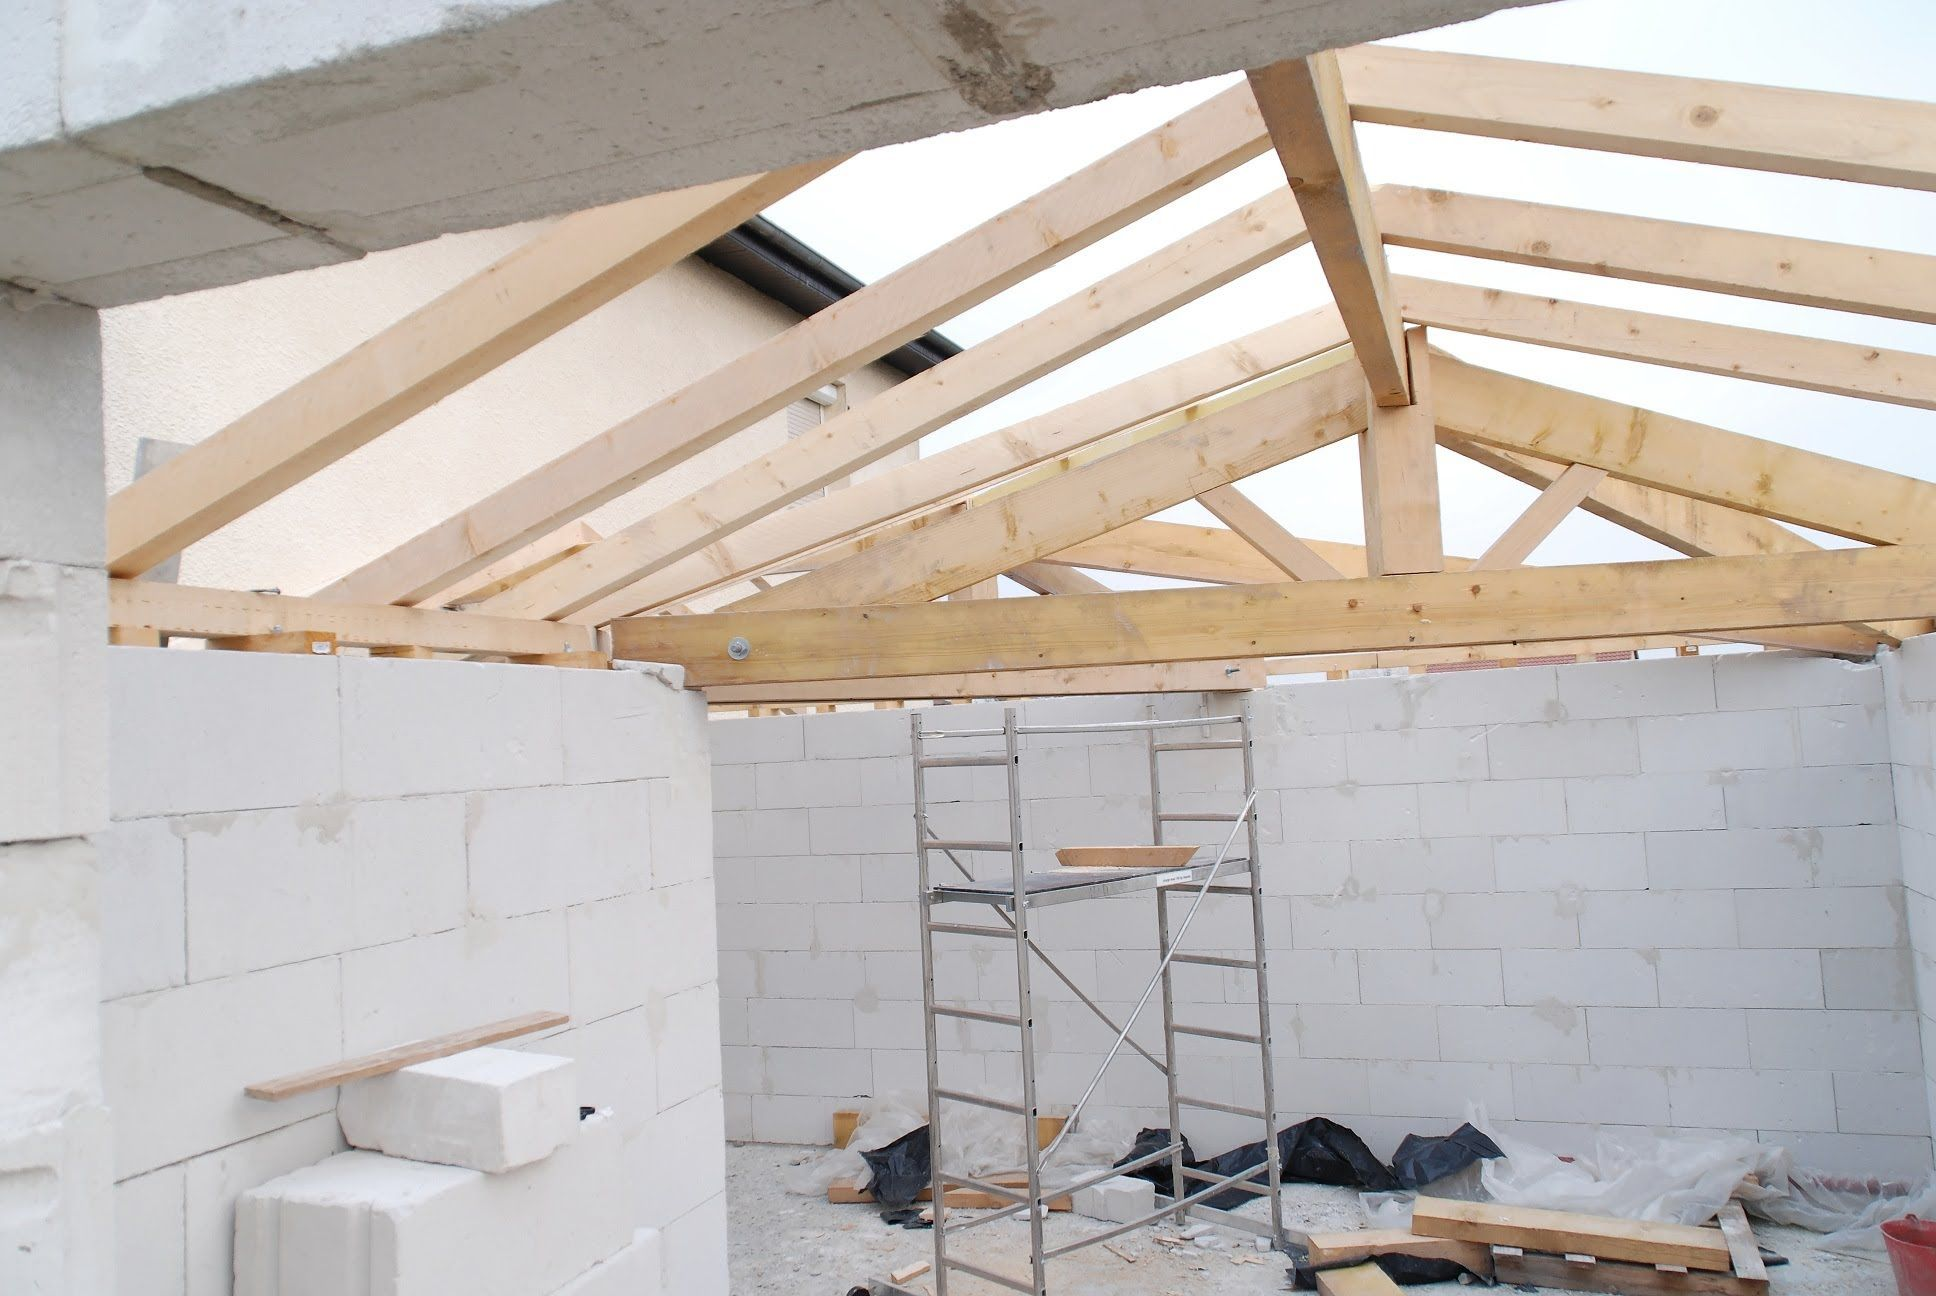 How to build a conventional wood pitched roof framing house extension stuff to buy - Build wood roof abcs roof framing ...